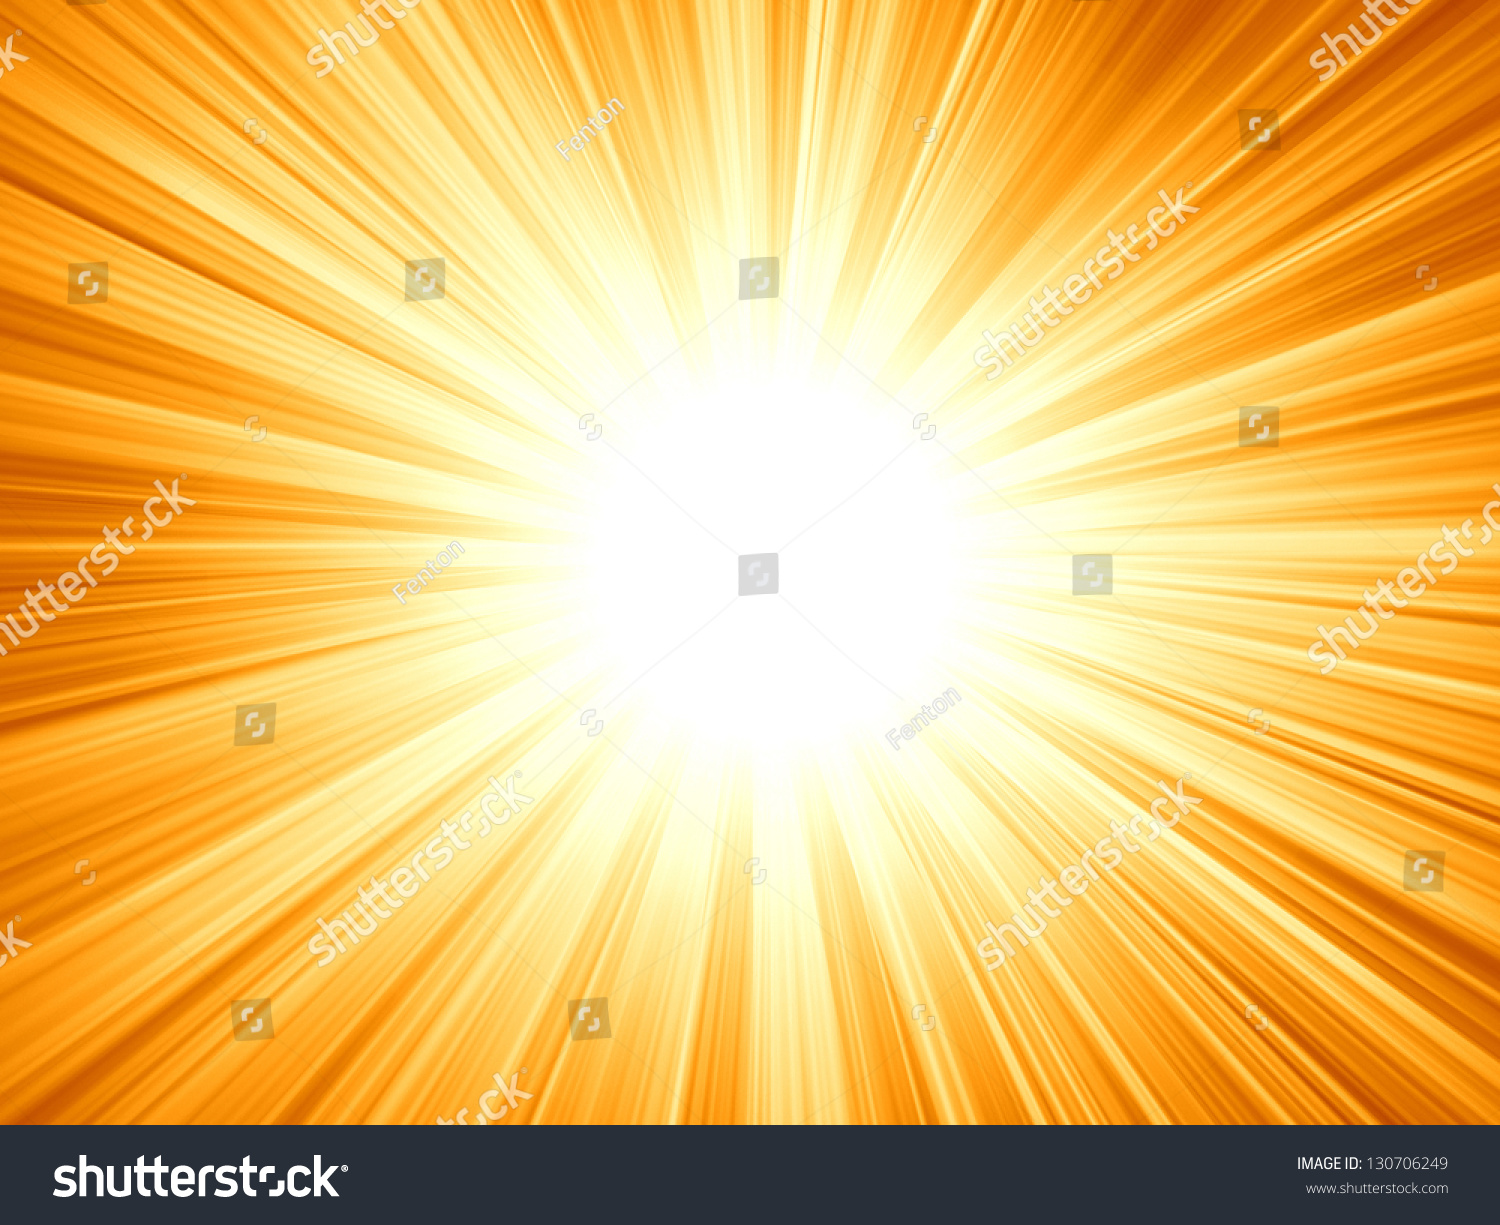 hight resolution of clipart sun on an orange background